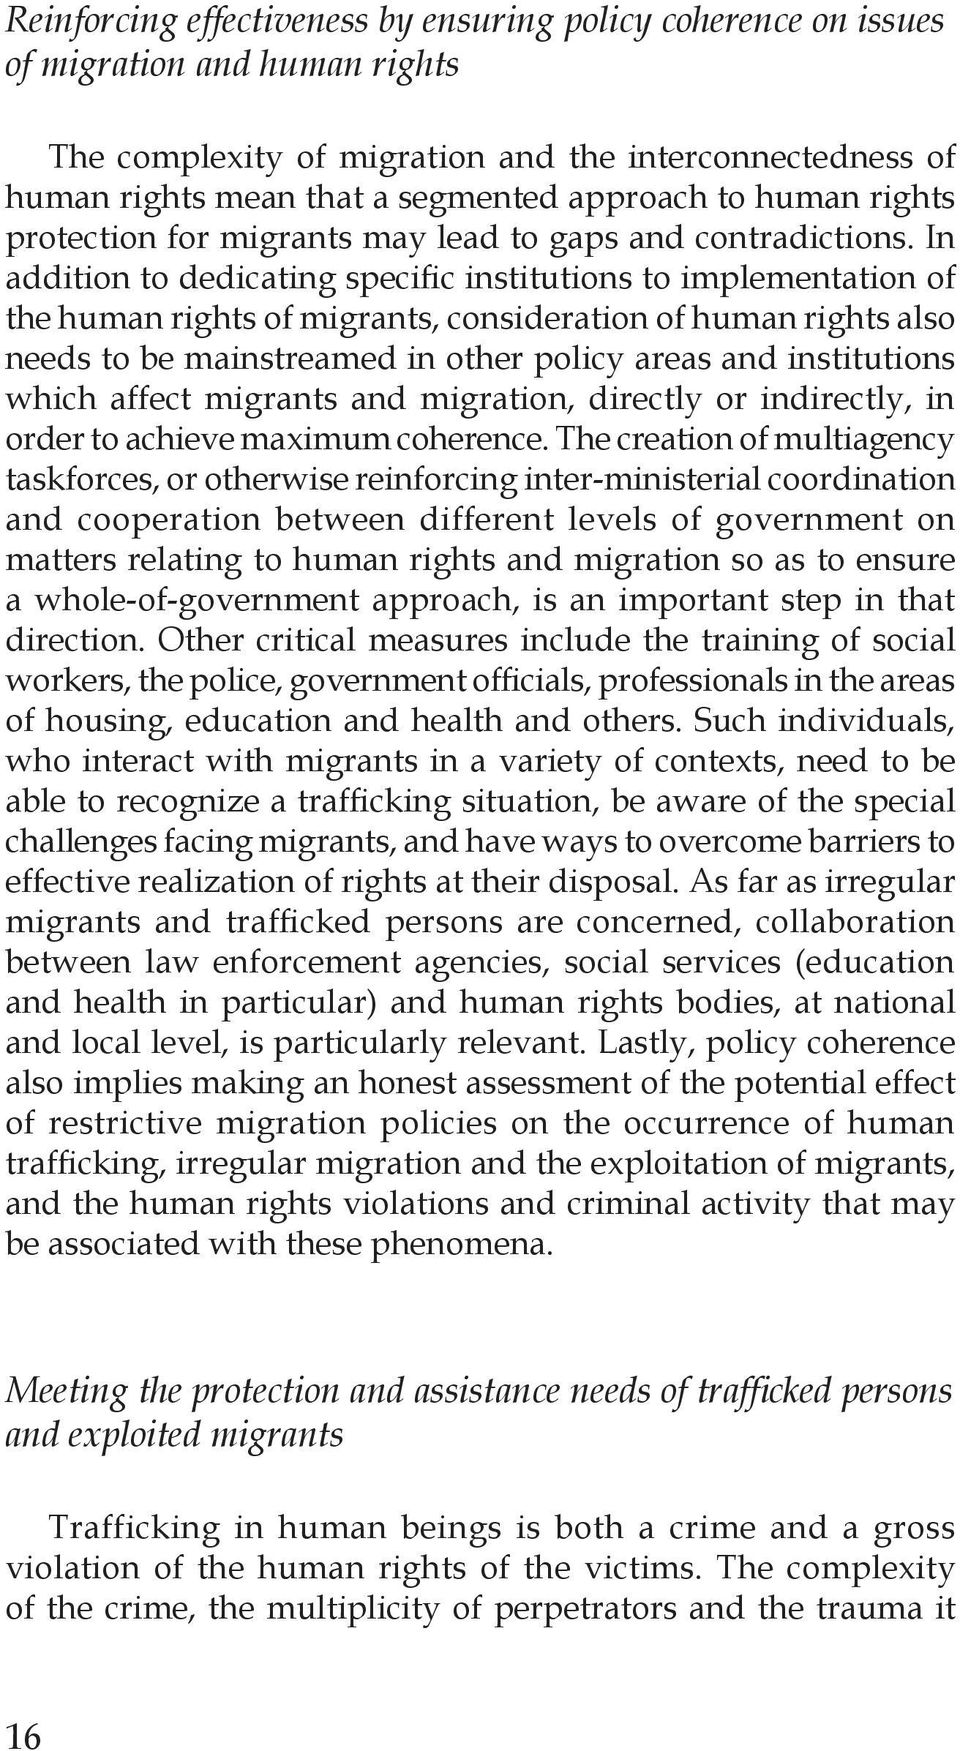 In addition to dedicating specific institutions to implementation of the human rights of migrants, consideration of human rights also needs to be mainstreamed in other policy areas and institutions